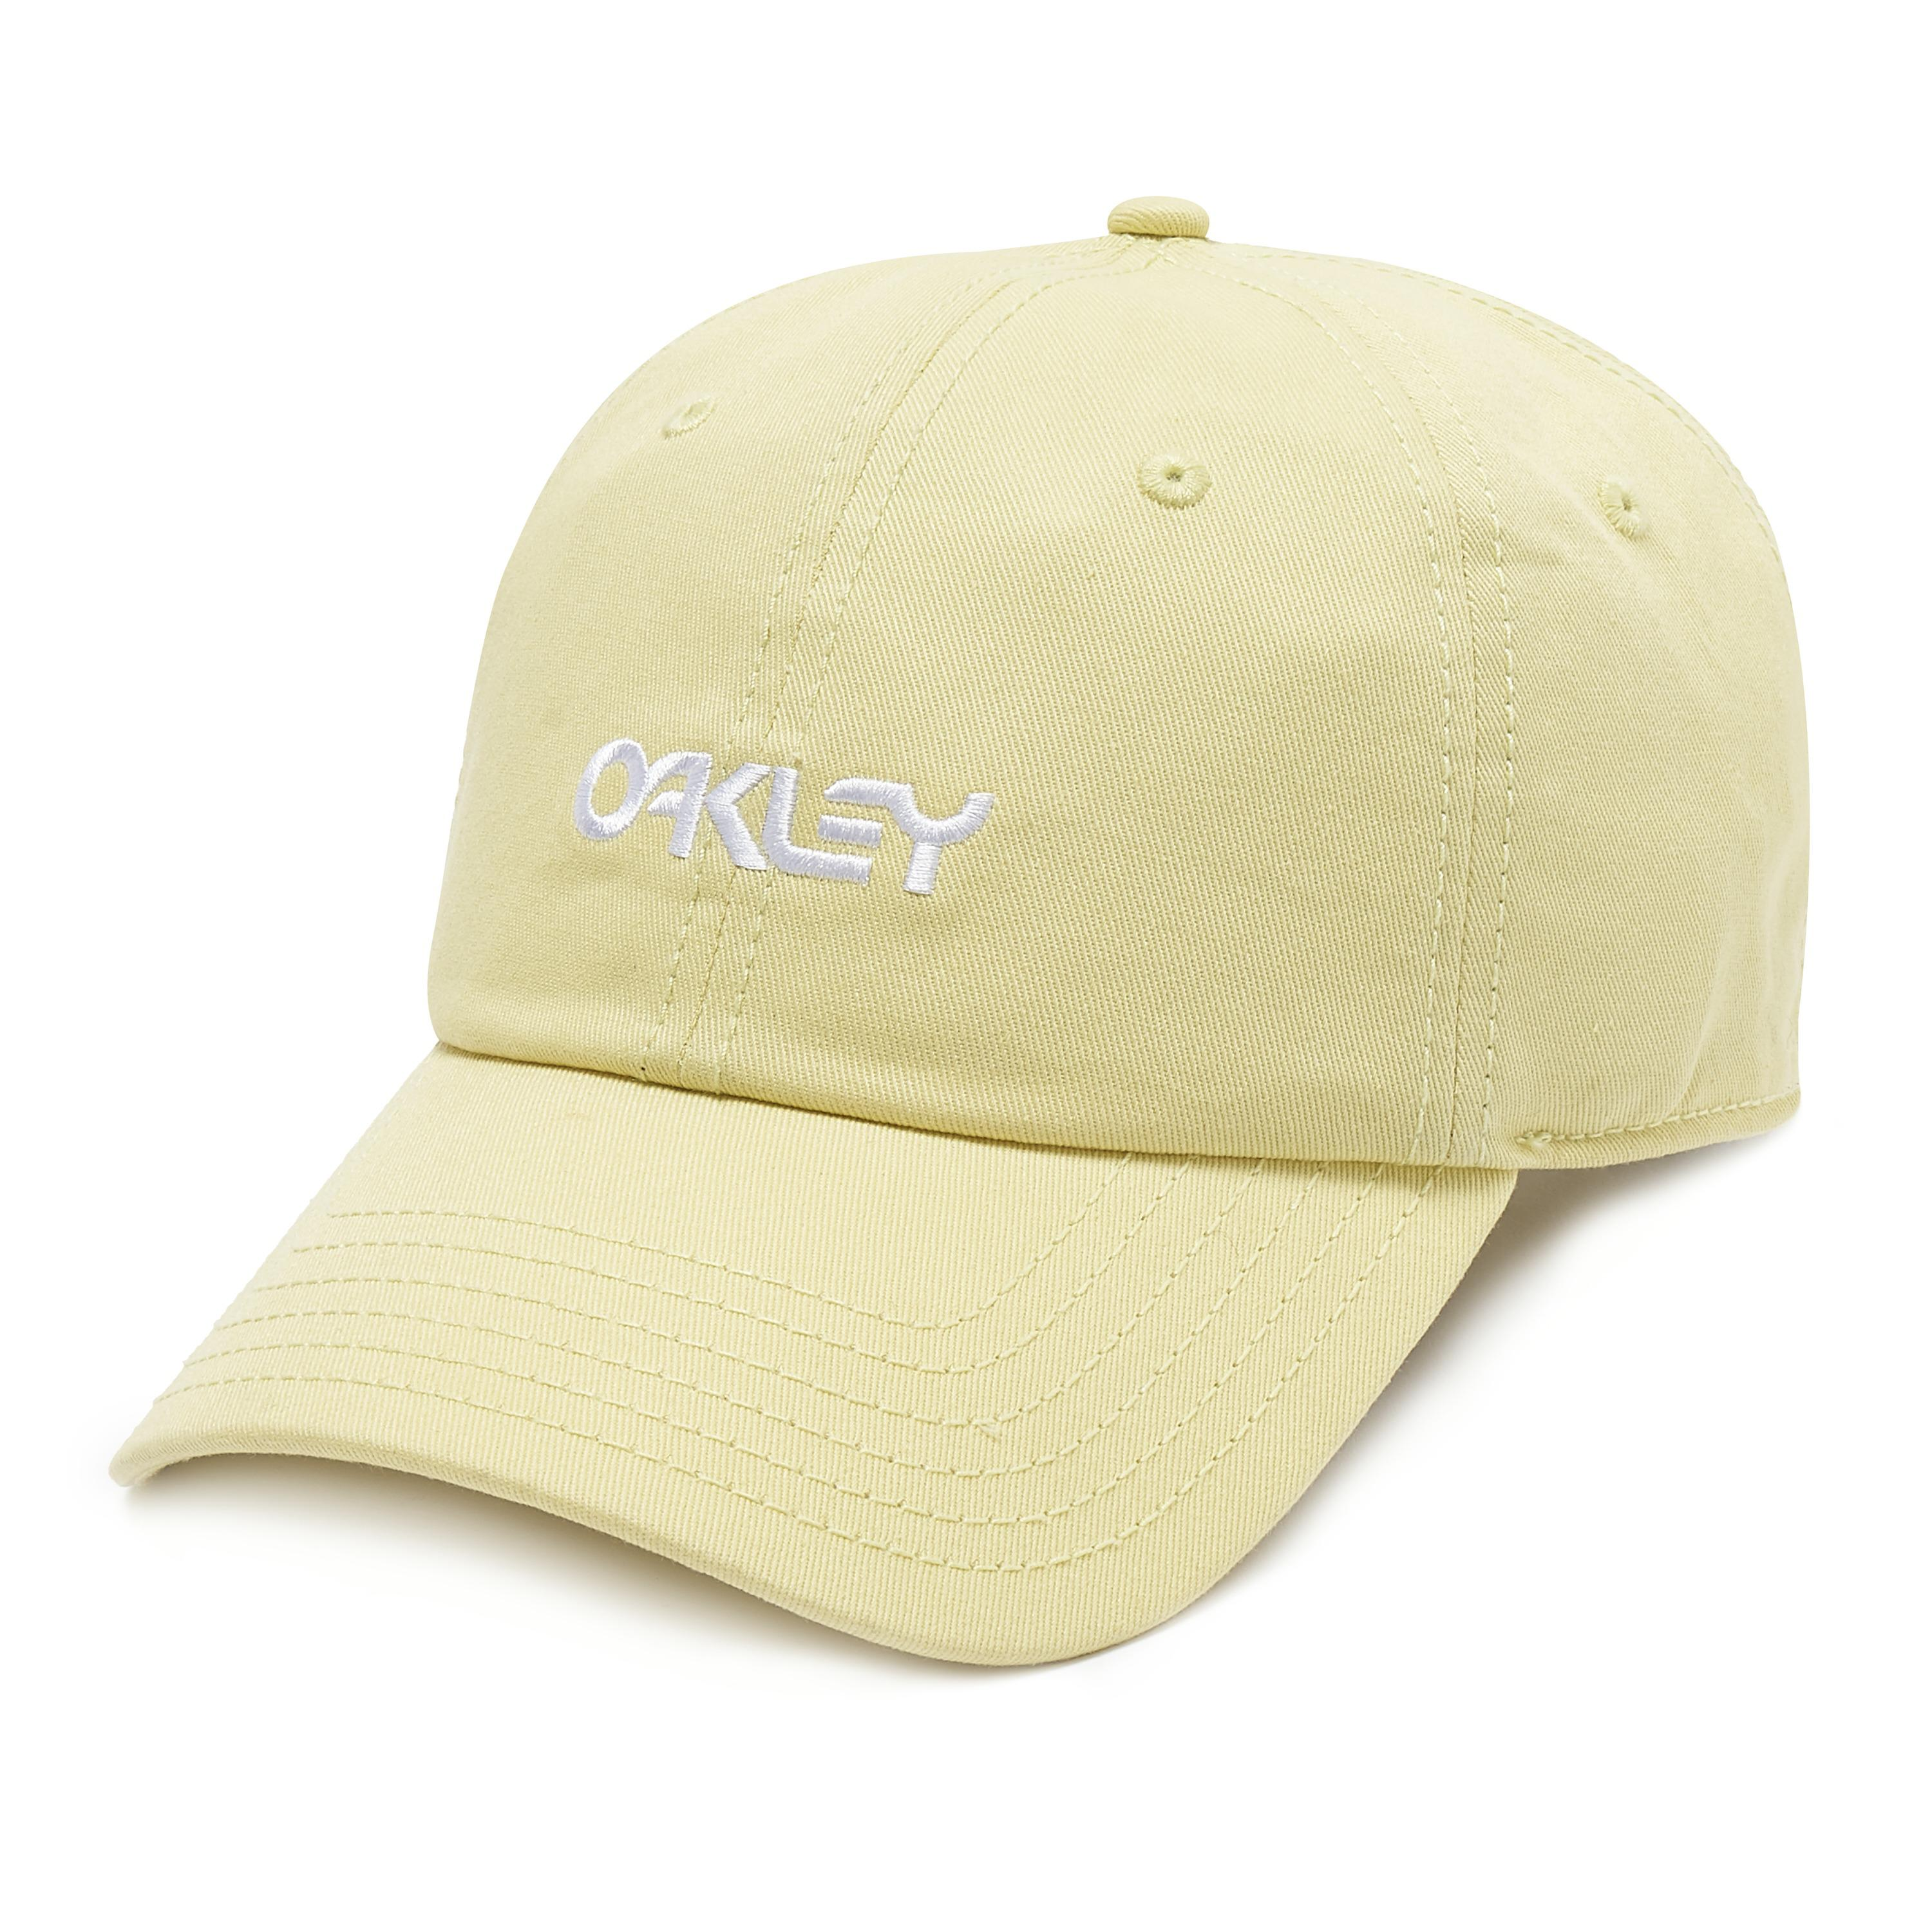 26e35d02d82 ... coupon lyst oakley fs dad hat in yellow for men 24bc2 28386